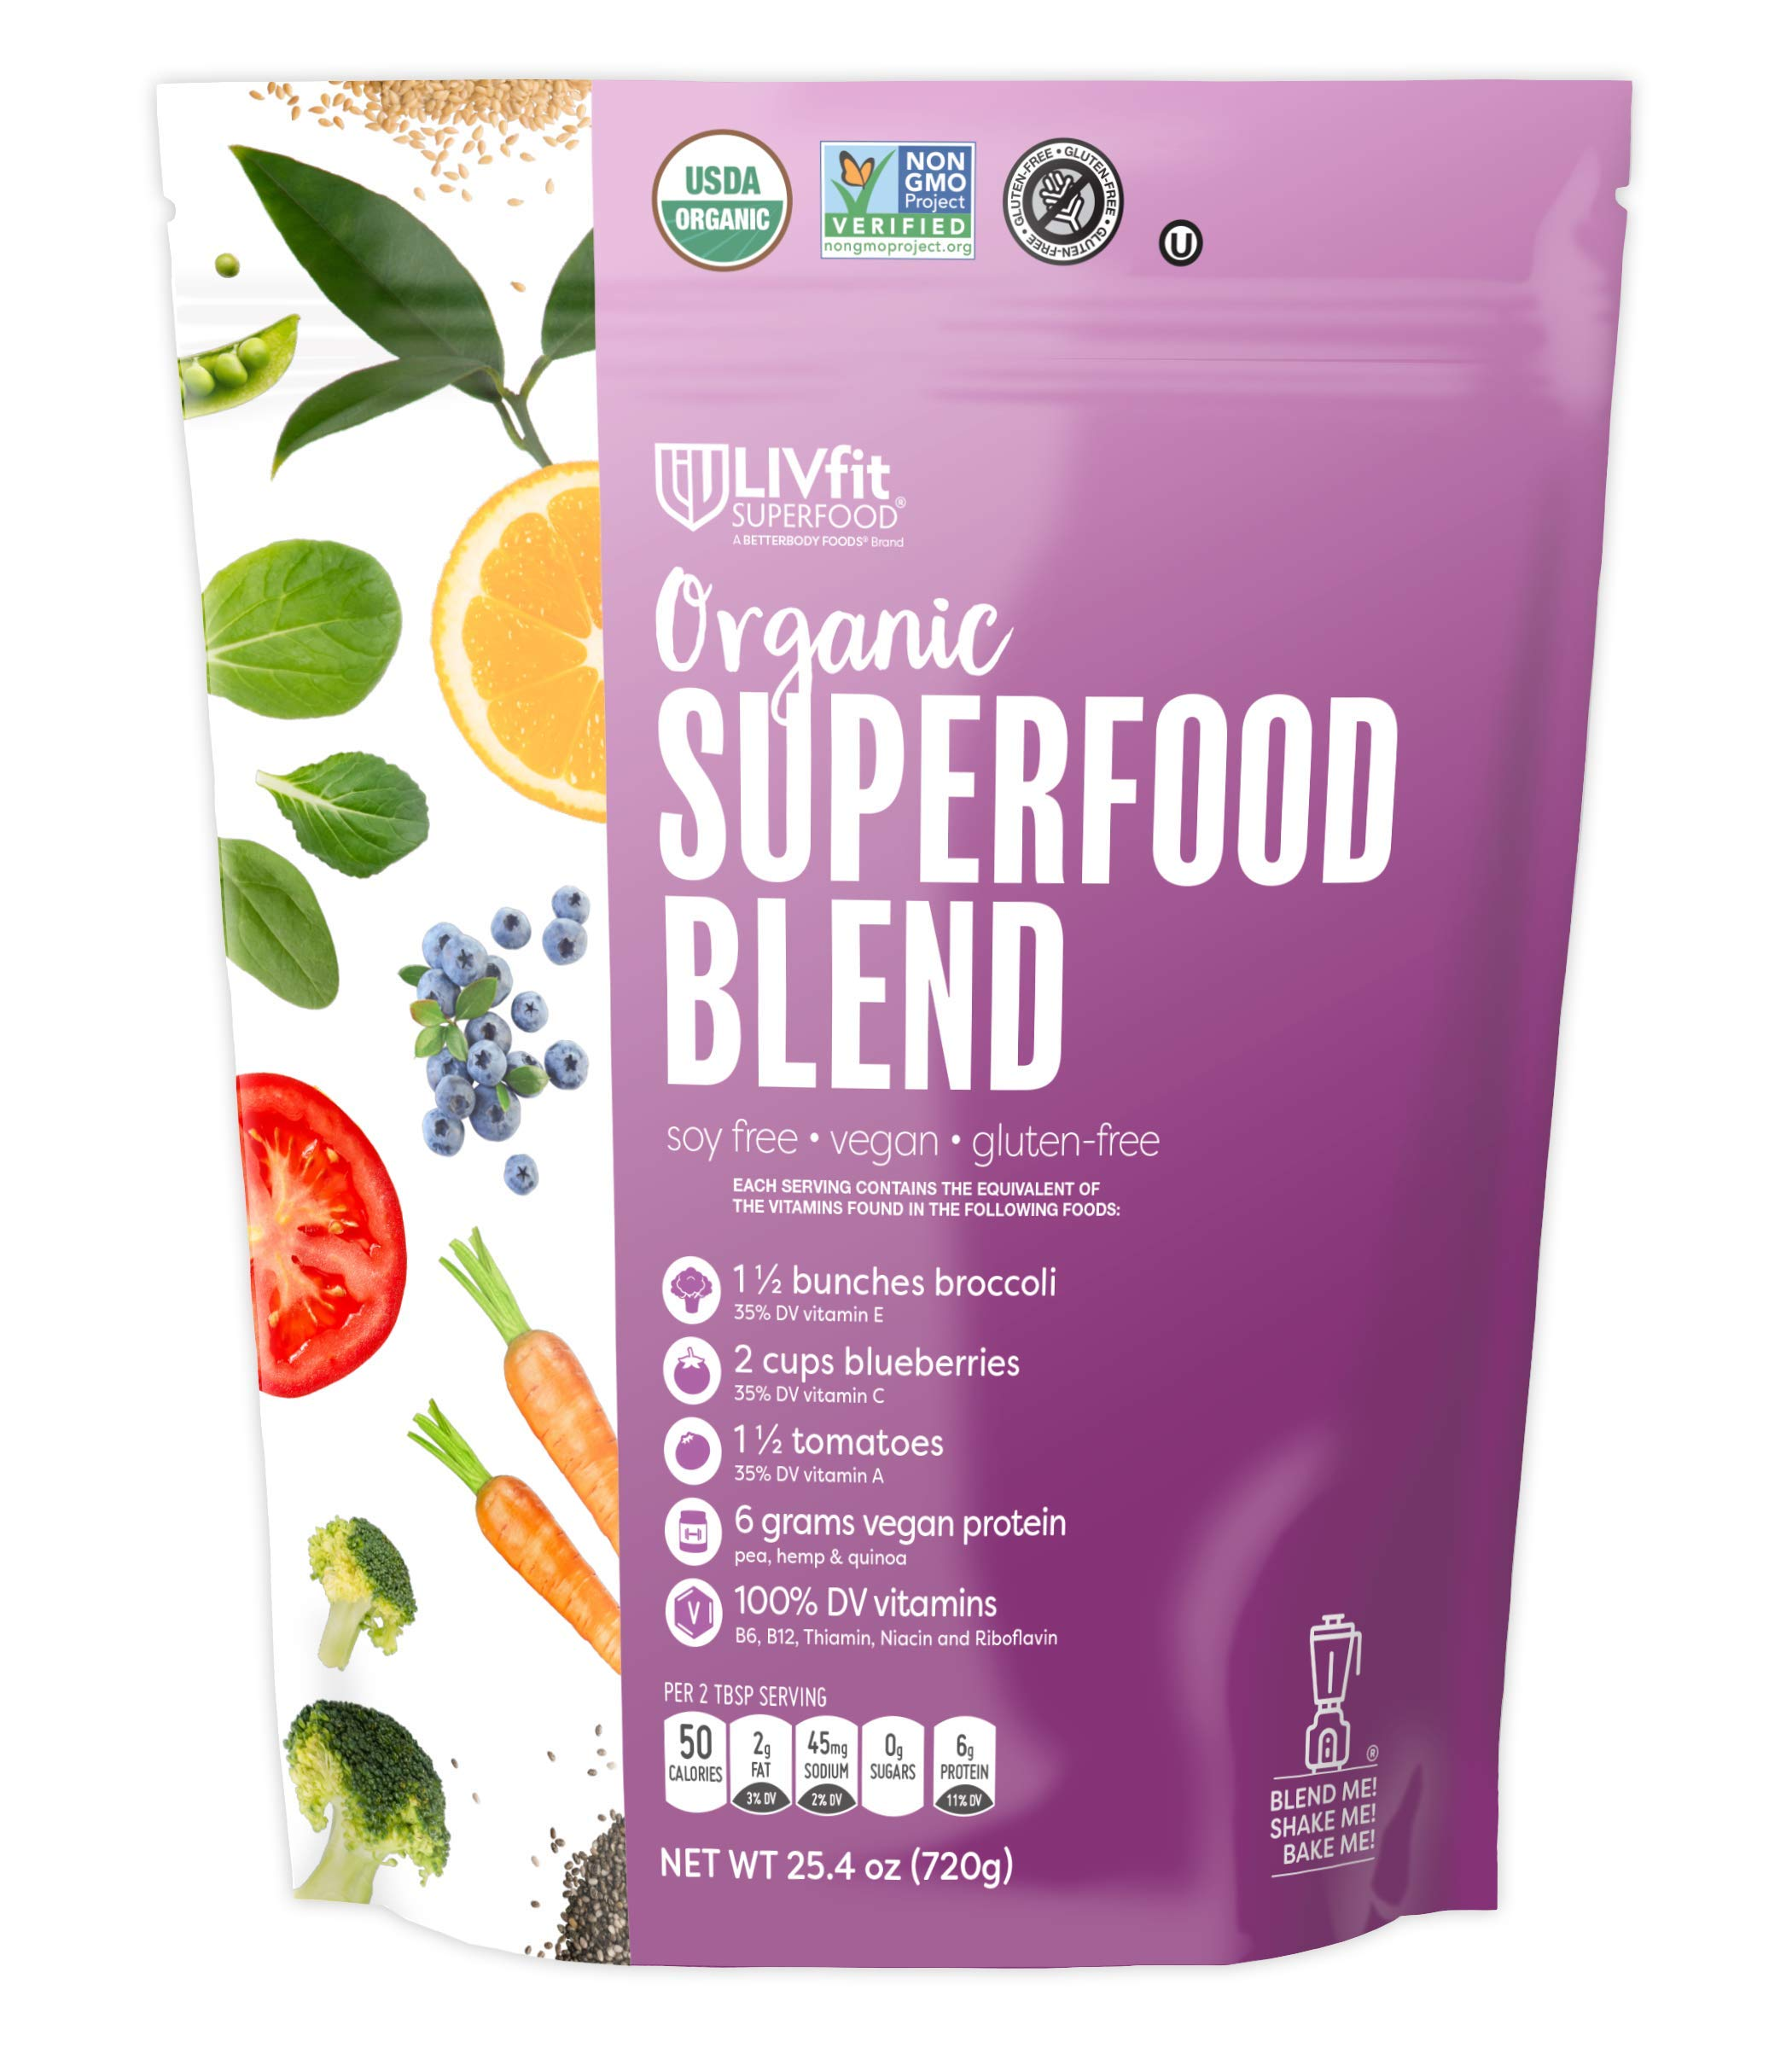 LIVfit Superfood Organic Superfood Blend Powder 720 Gram, 6g of Vegan Protein per Serving, Add to Morning Smoothies Fruit Shakes or Juices, Vegan, Soy- Gluten-Free by BetterBody Foods